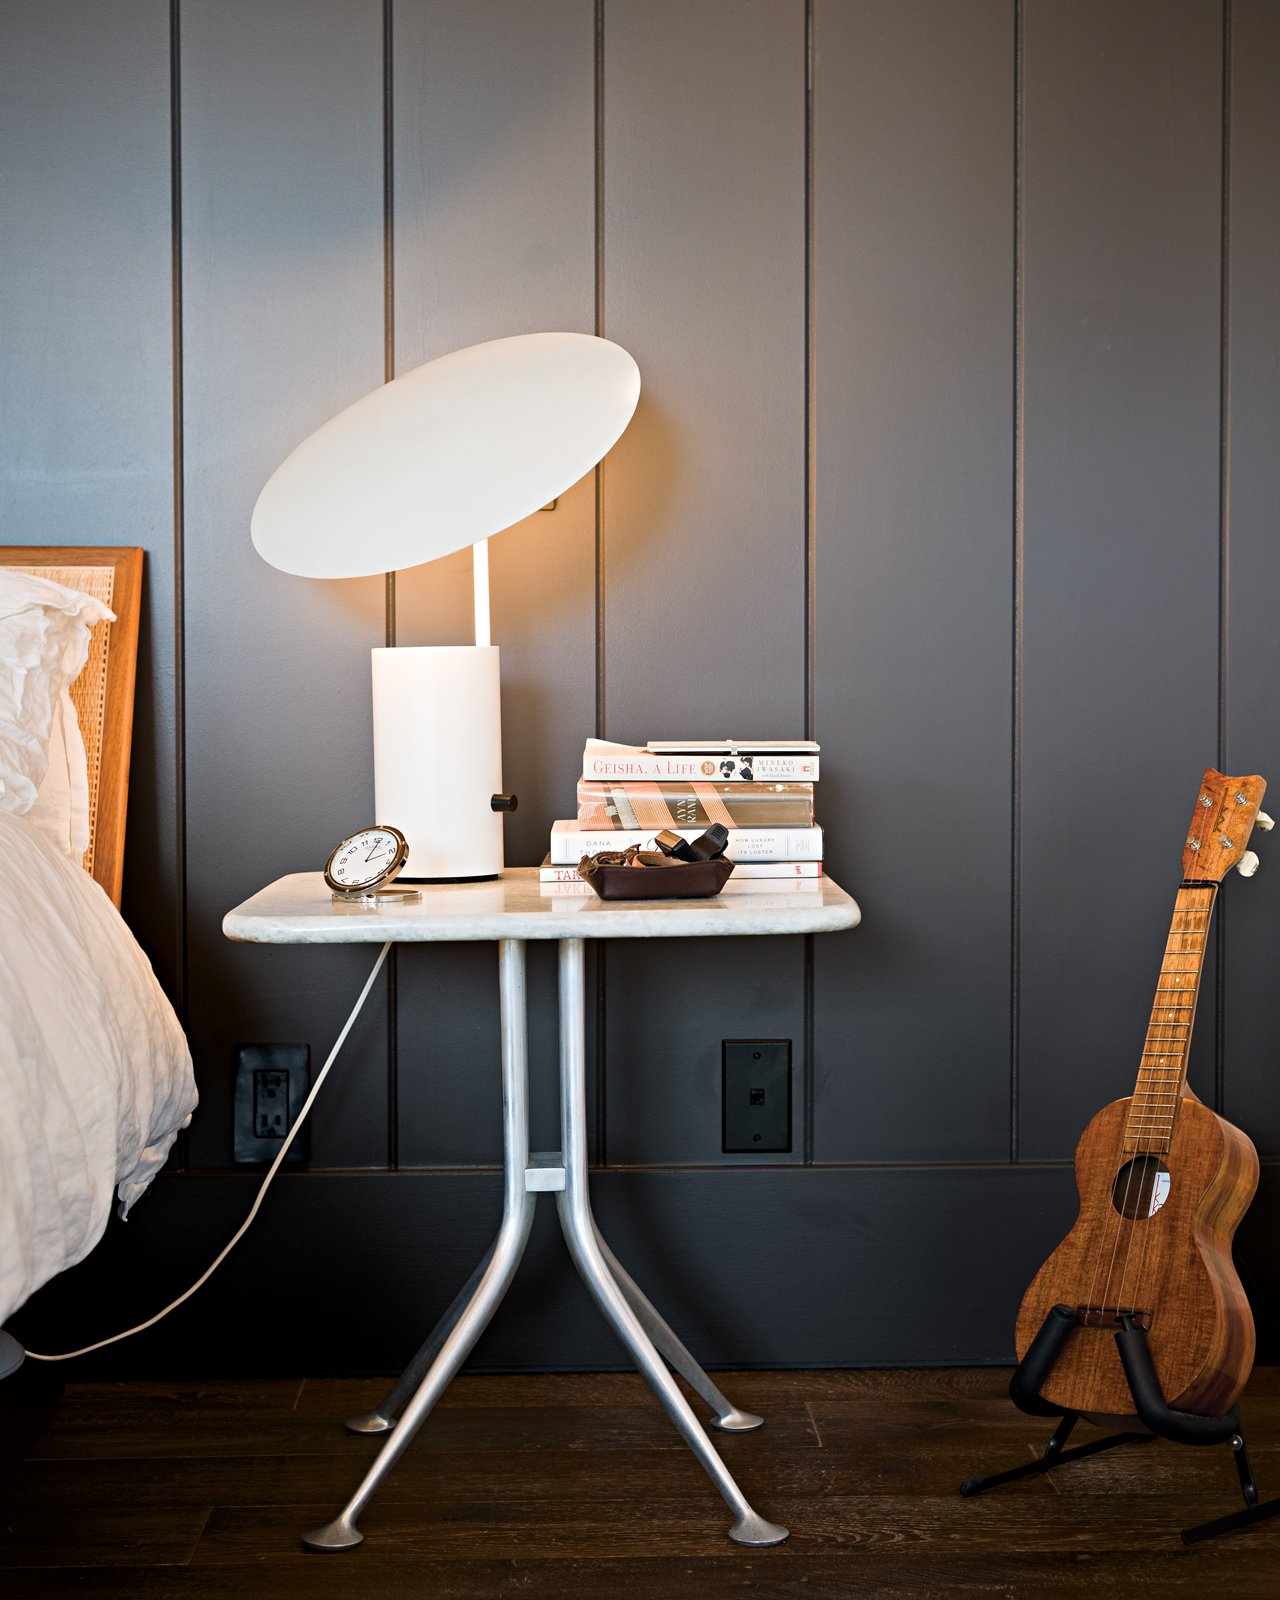 Bedroom, Night Stands, Table Lighting, and Dark Hardwood Floor More prized possessions that made the cut: A George Nelson Half-Nelson lamp sits atop an Alexander Girard bedside table.  Photo 6 of 18 in Less is More in this Manhattan Beach Bungalow